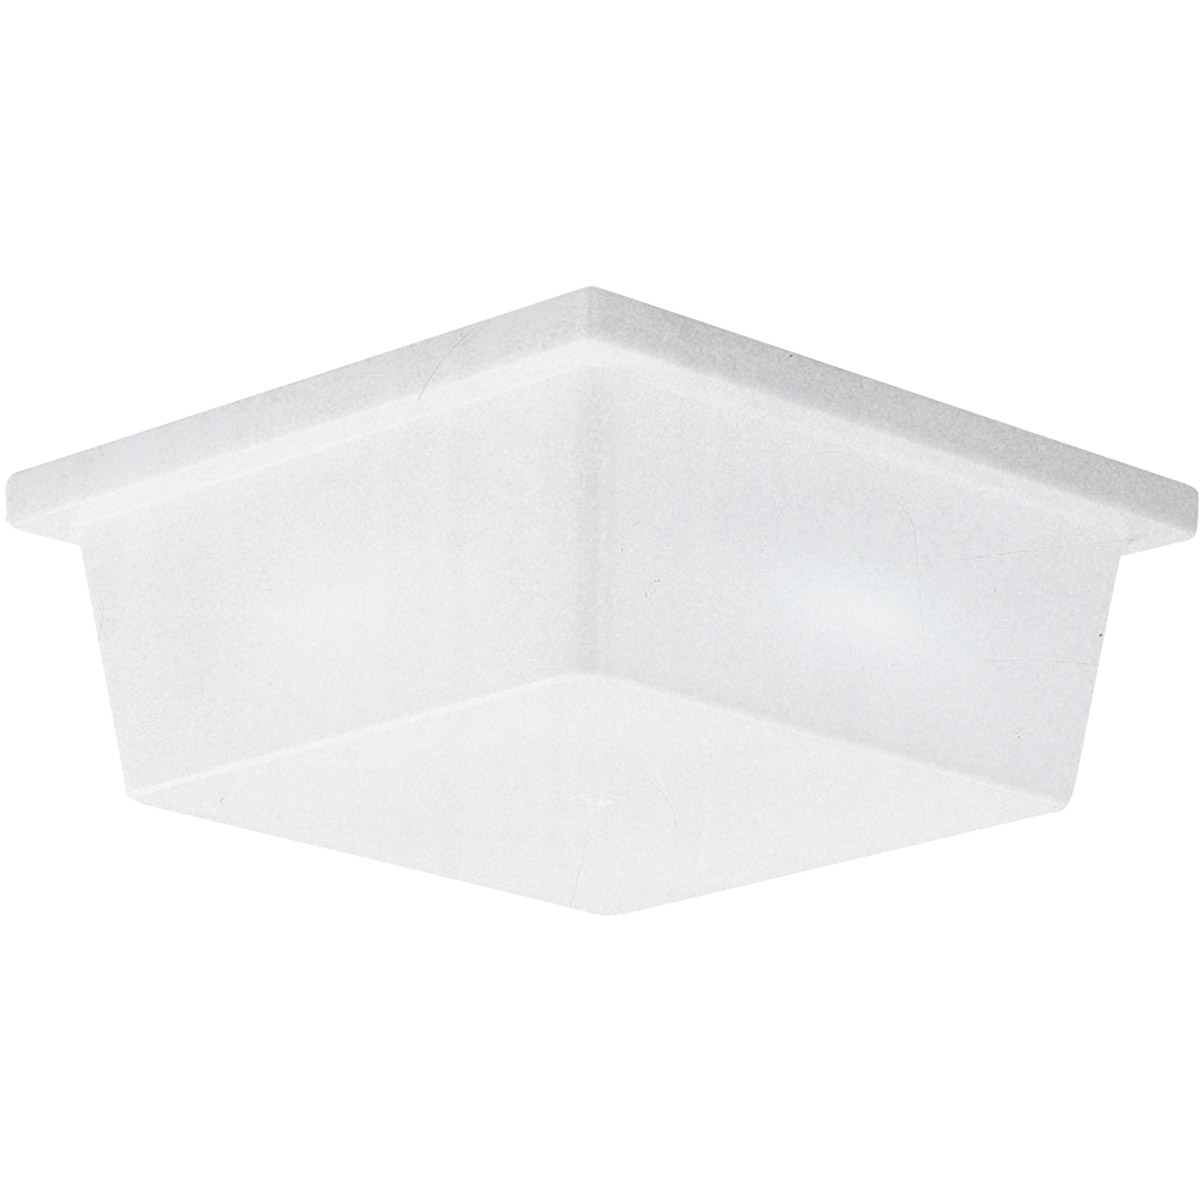 Sea Gull Lighting Signature 2 Light Flush Mount in White Plastic 7916BLE-68